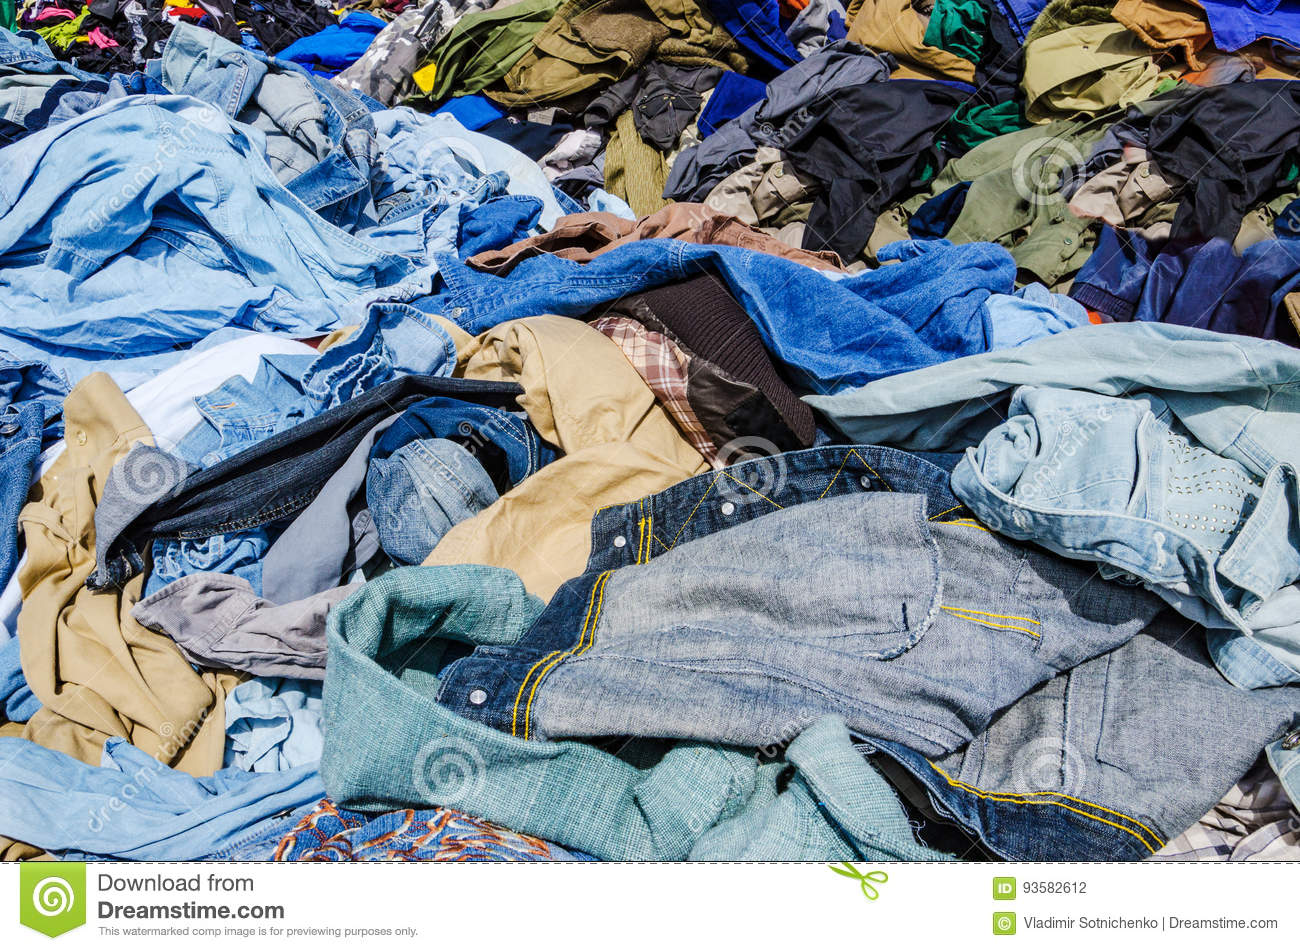 Heaps of clothing on the second hand market